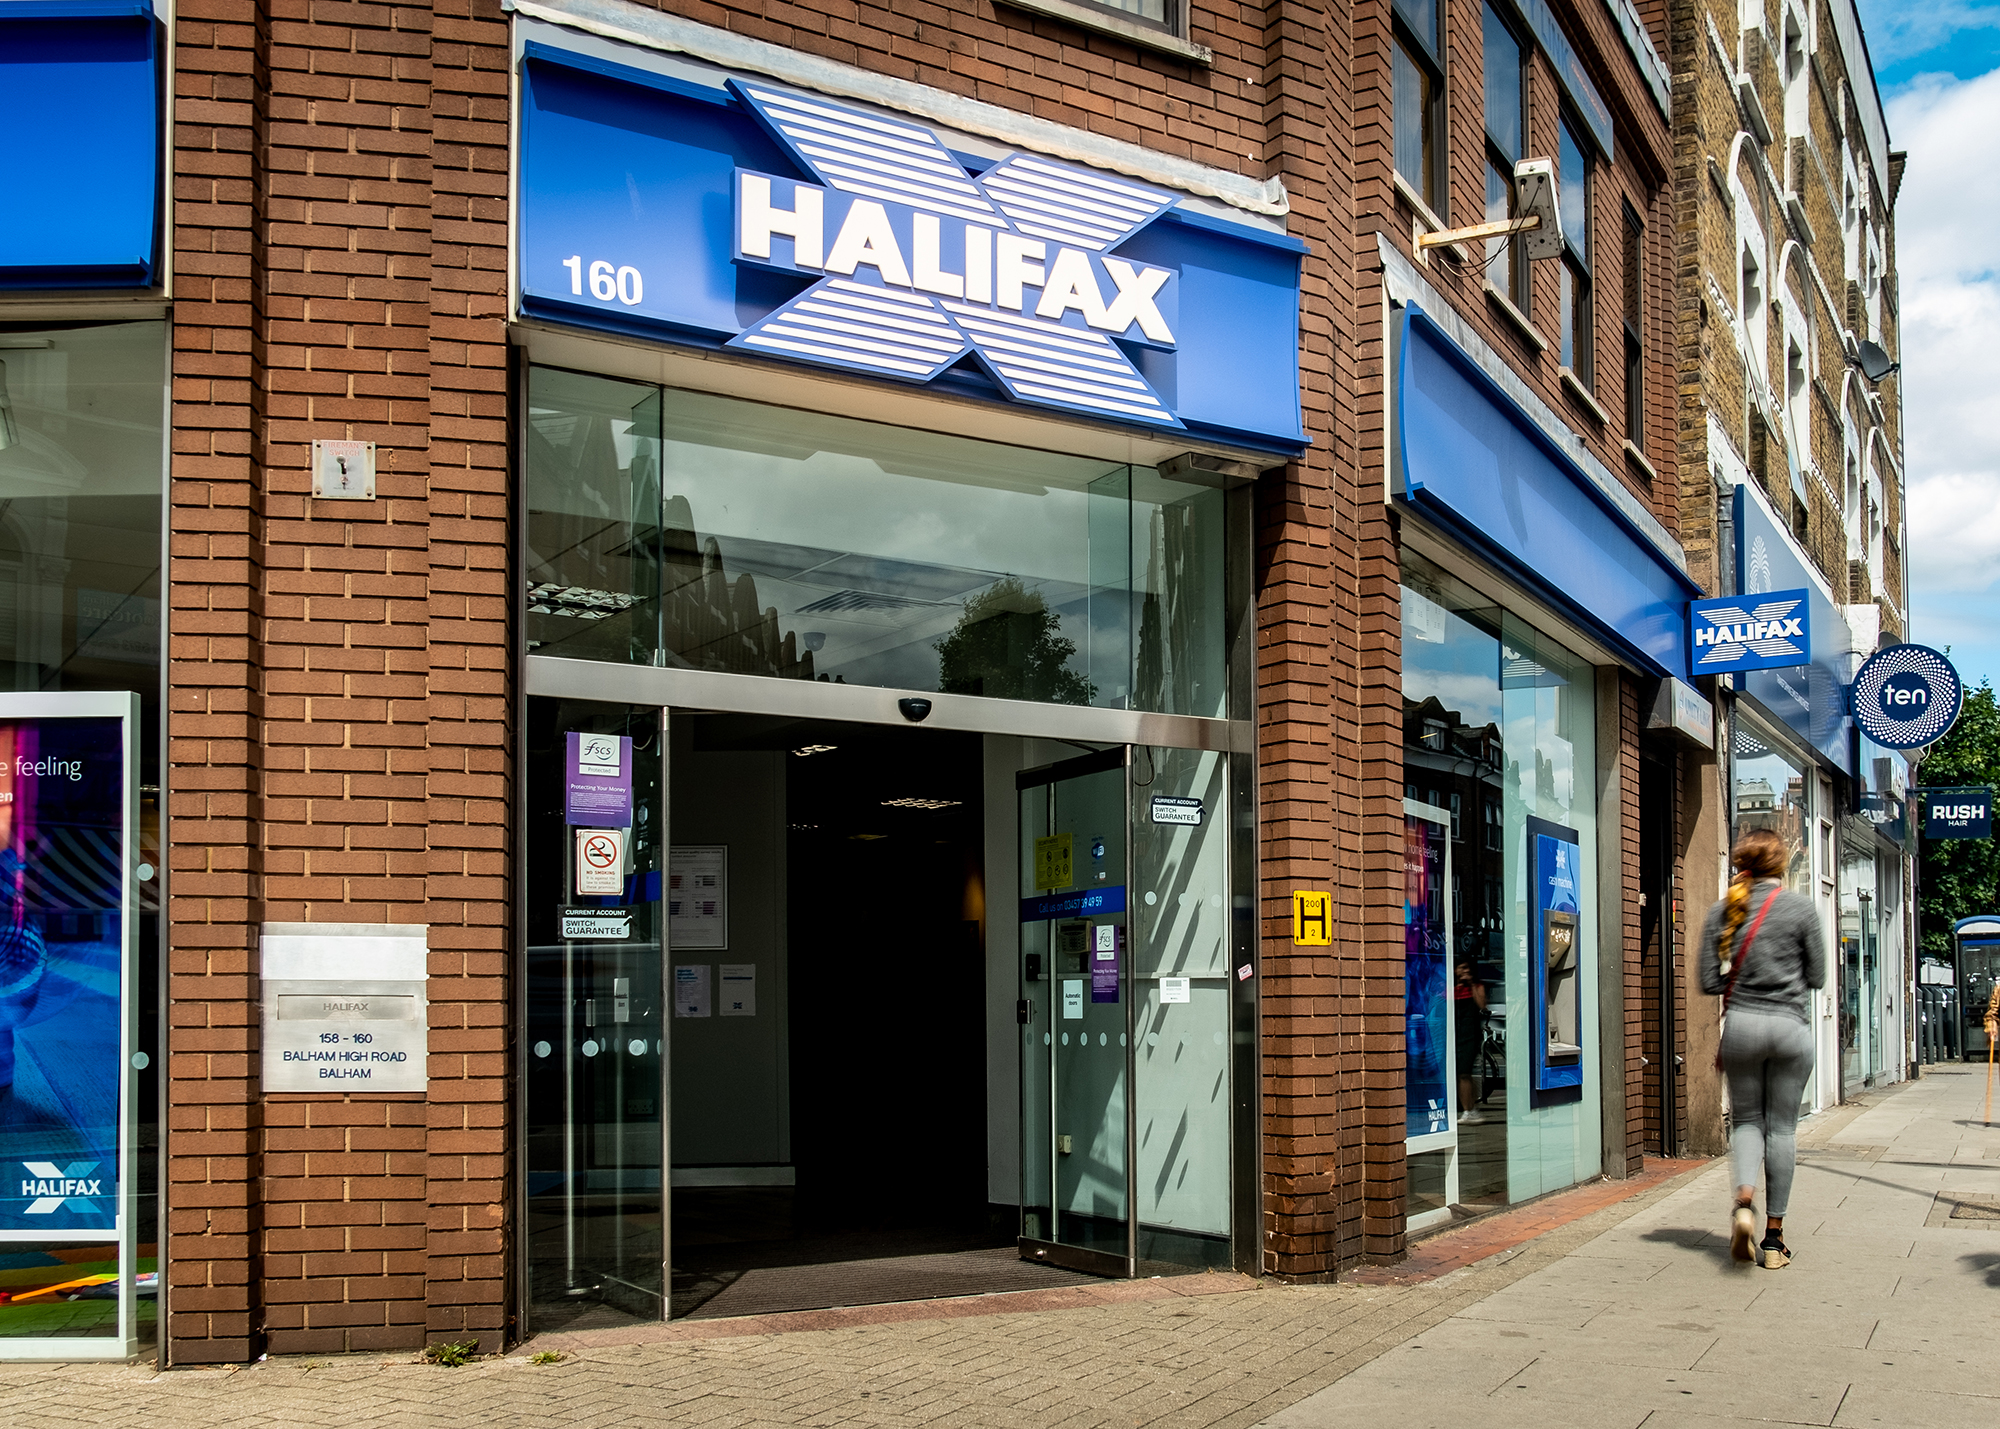 A Halifax bank branch. (Image: Willy Barton/Shutterstock)